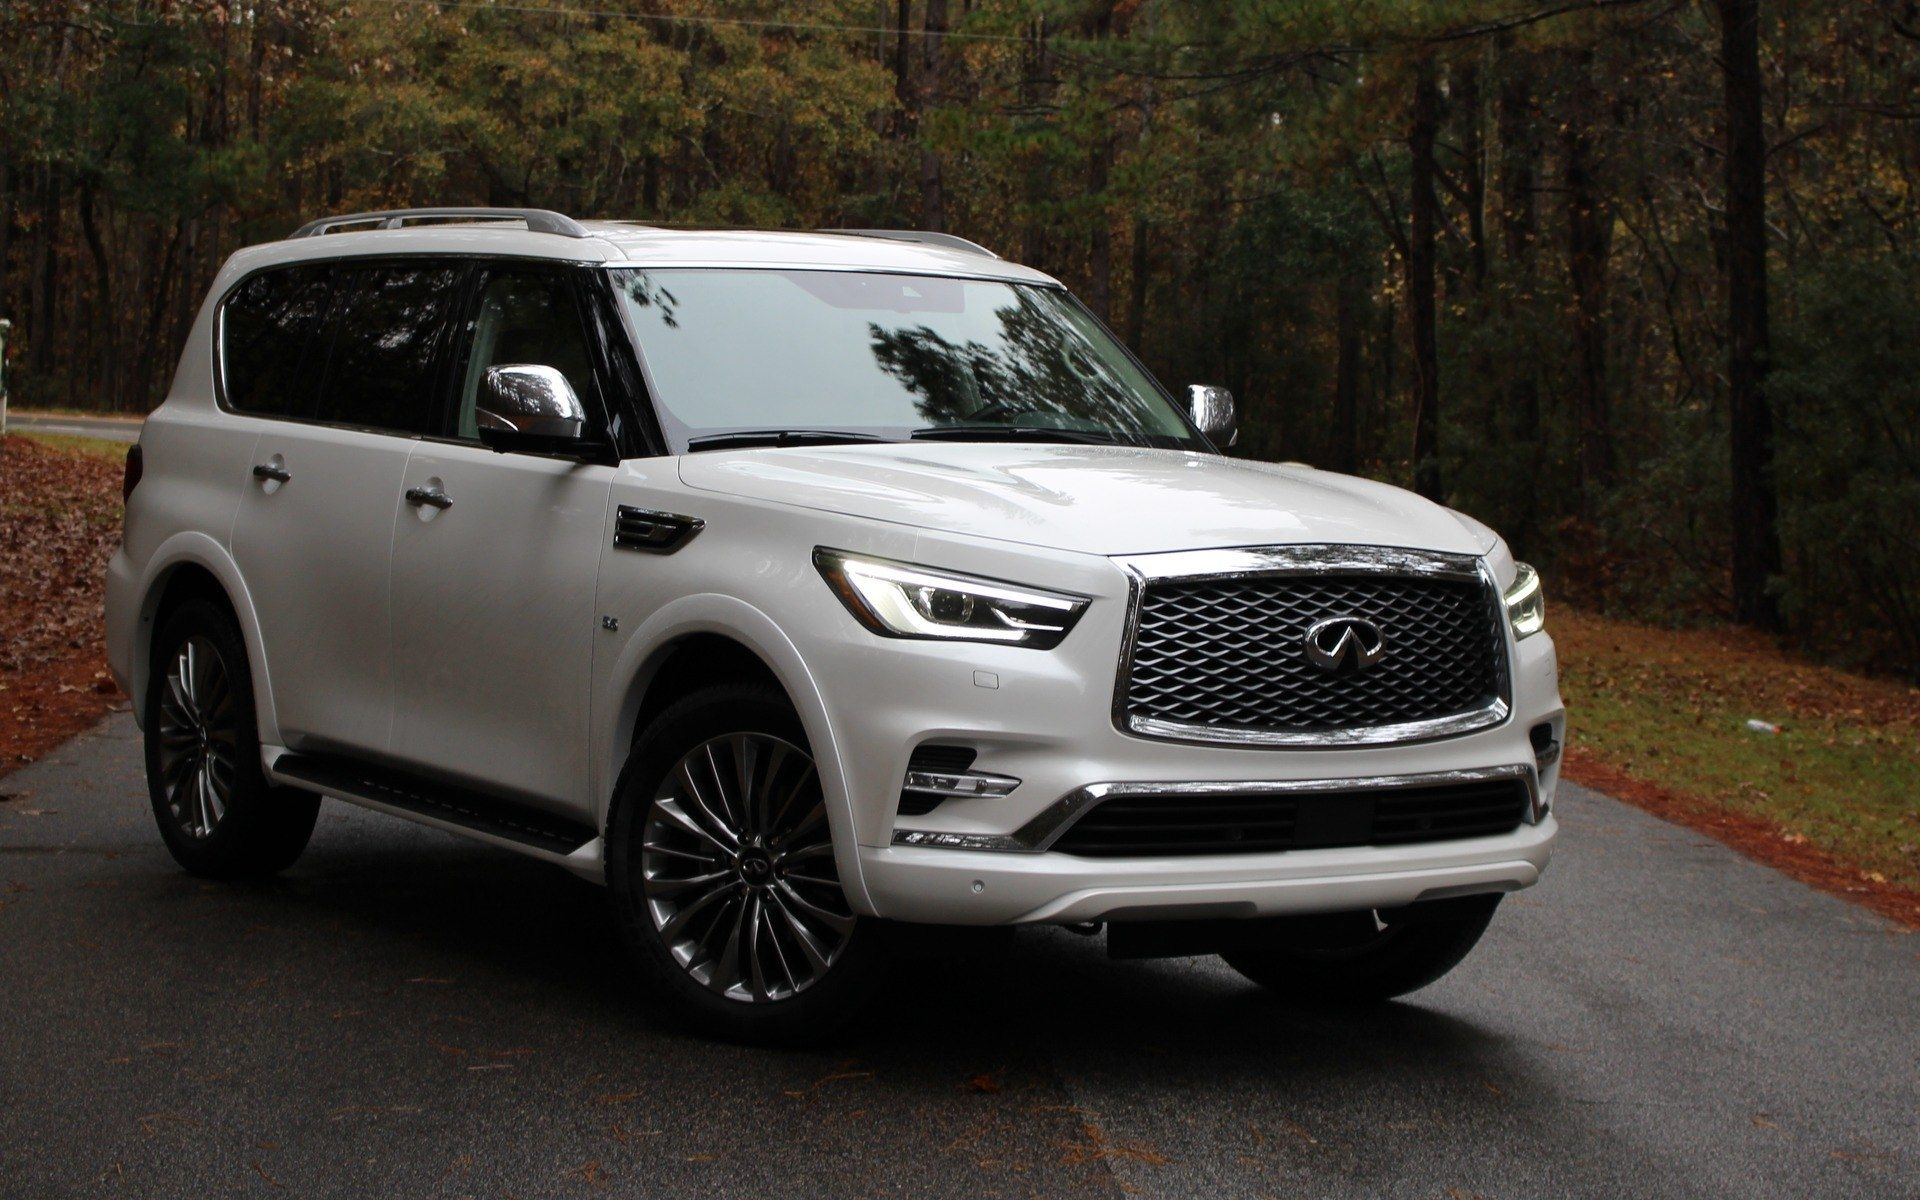 Price Of 2020 Lexus Gx Vs Infiniti Qx80 Best Suv Cars Lexus Gx Best Suv